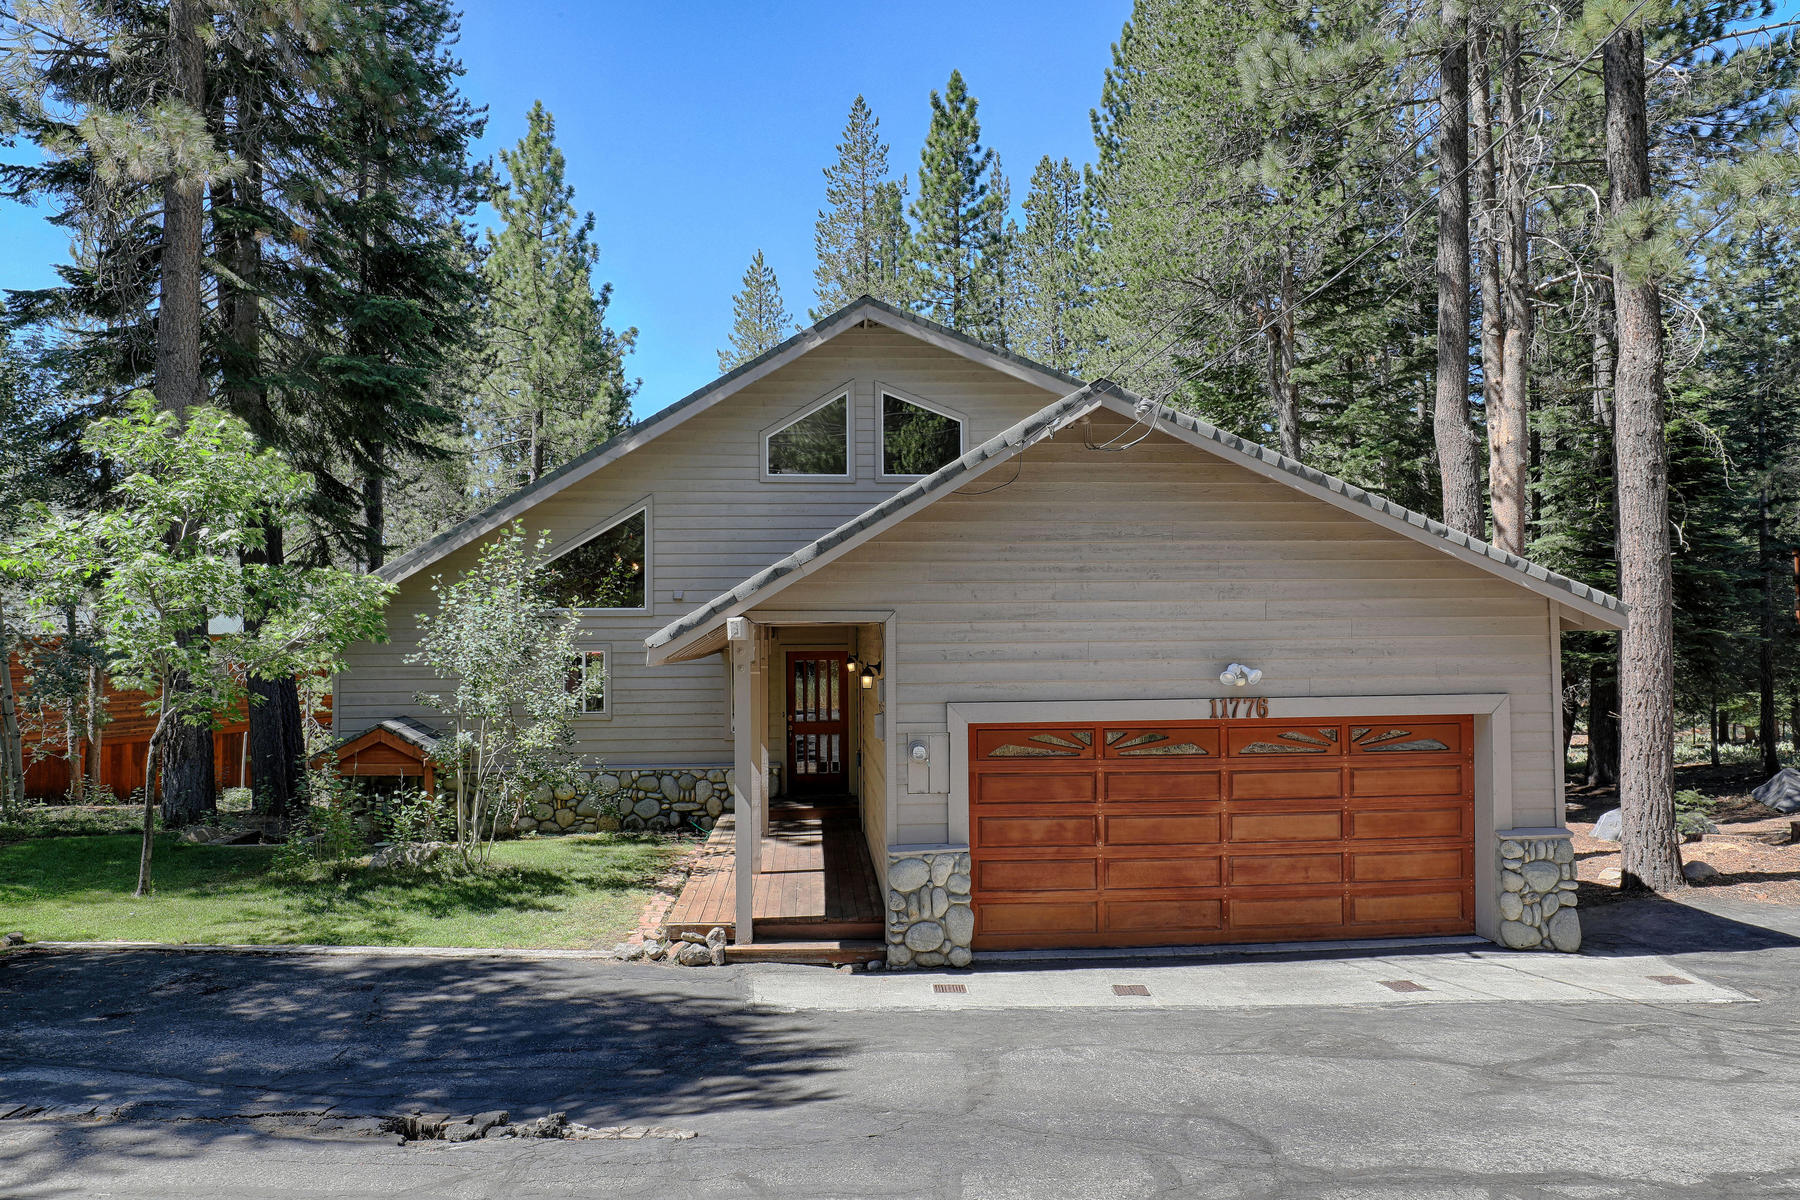 Property for Active at 11776 Schussing Way, Truckee, CA 96161 11776 Schussing Way Truckee, California 96161 United States